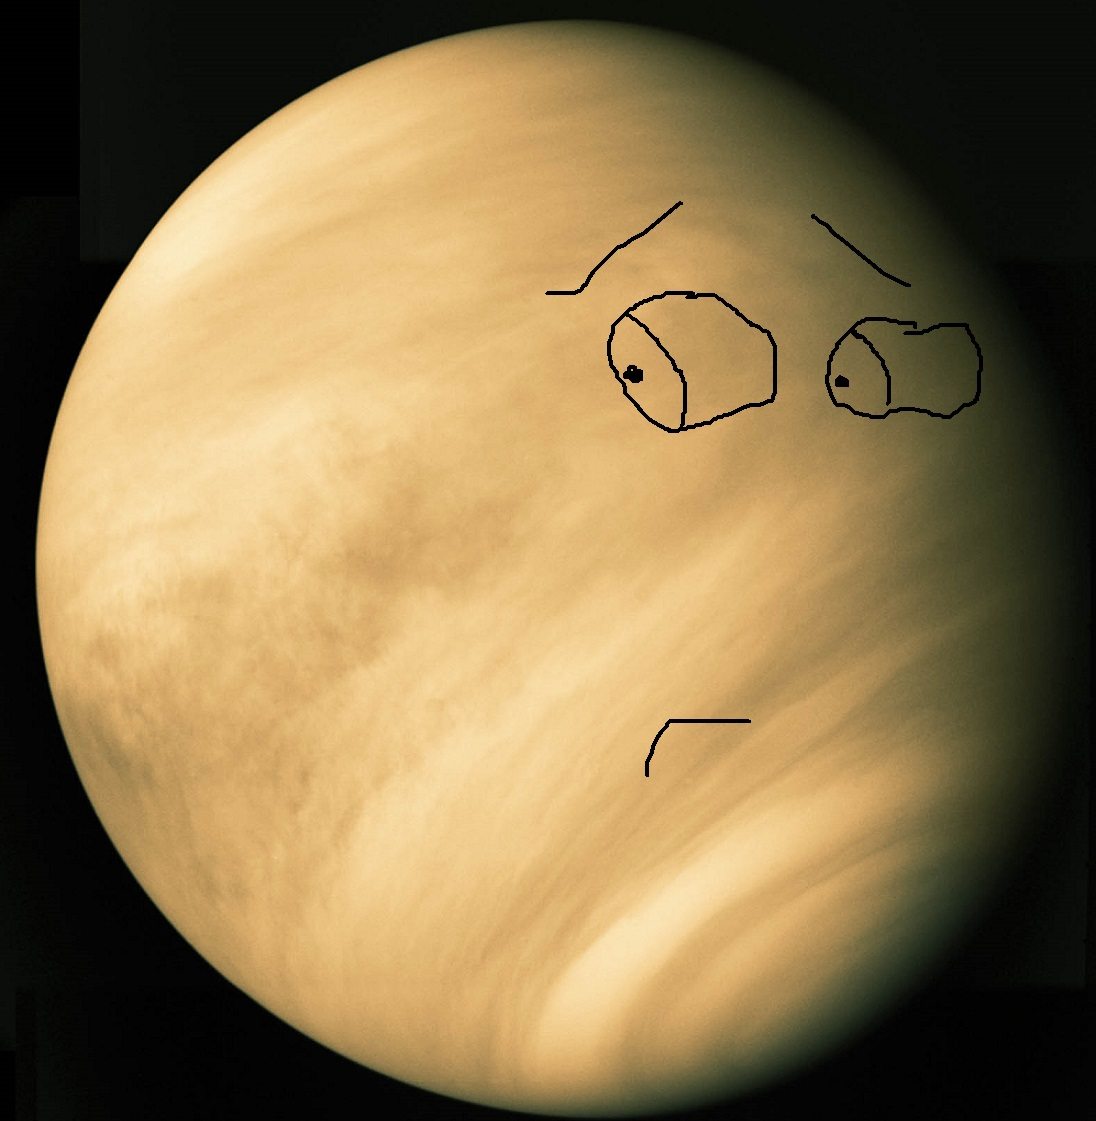 Venus thought it was hot stuff... that is until the first Von Neumann probe showed up with a miner's helmet and a pick axe.    Image credit: Mariner 10 (anthropomorphized by me)